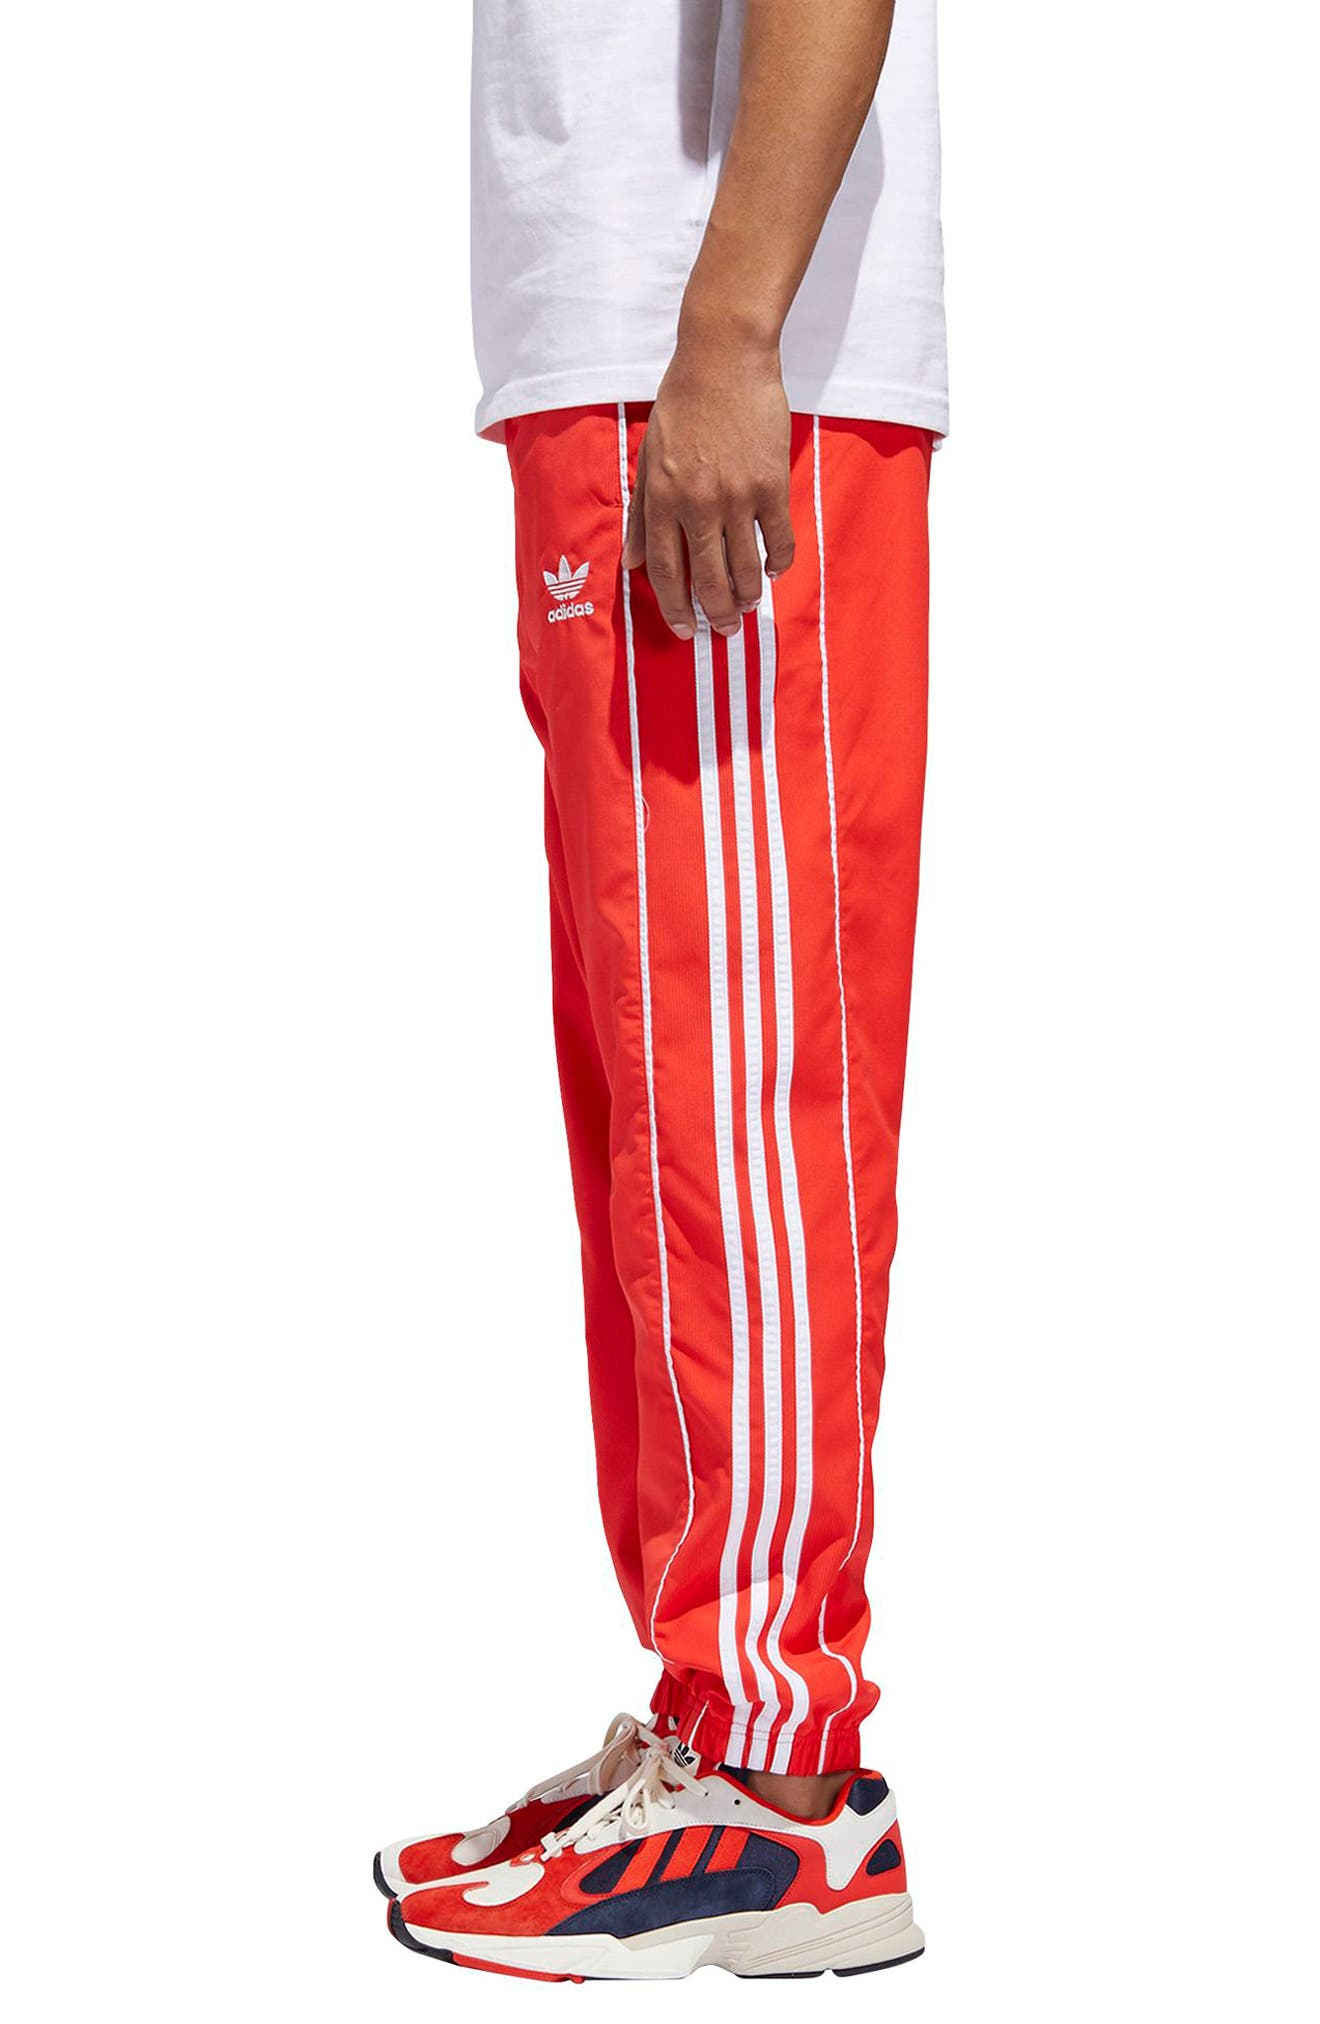 Authentics Ripstop Track Pants,                             Alternate thumbnail 3, color,                             HI-RES RED/ WHITE